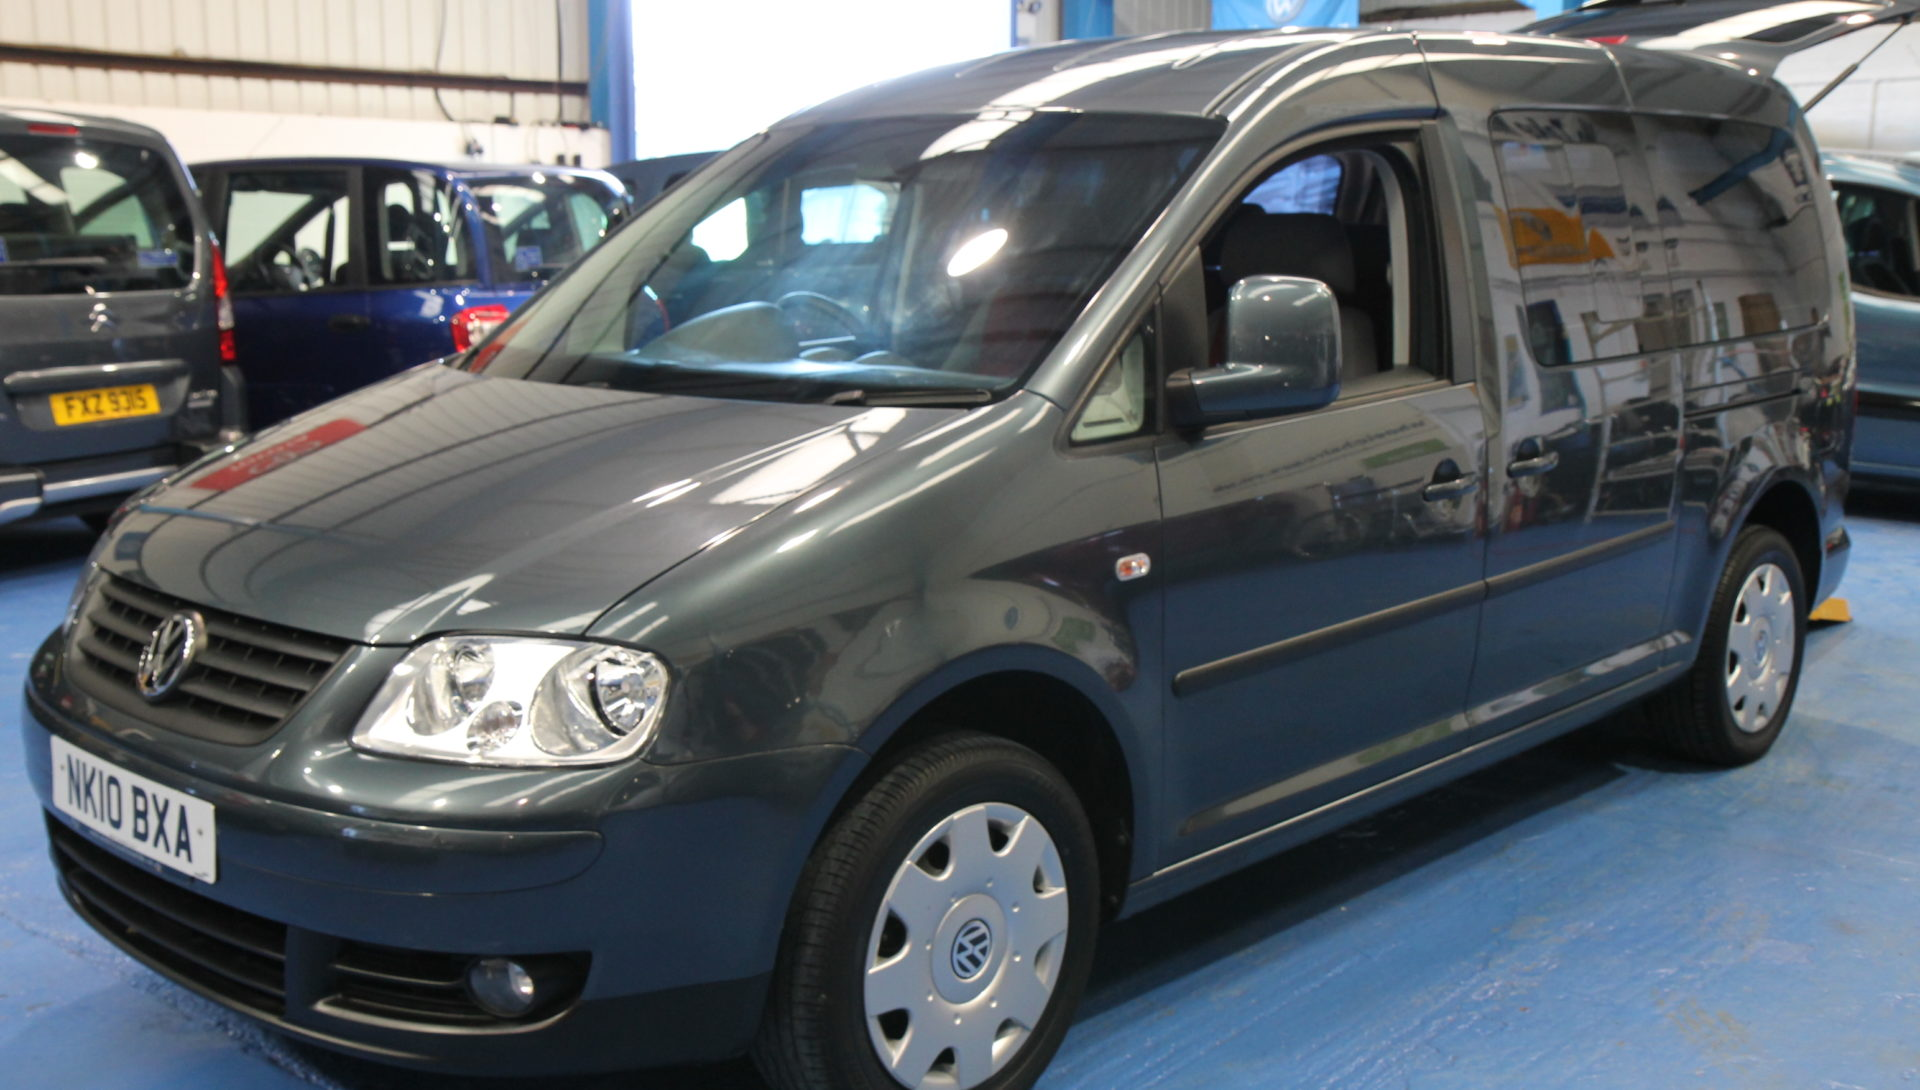 vw caddy maxi wheelchair accessible car nk10 wheelchair accessible vehicles. Black Bedroom Furniture Sets. Home Design Ideas